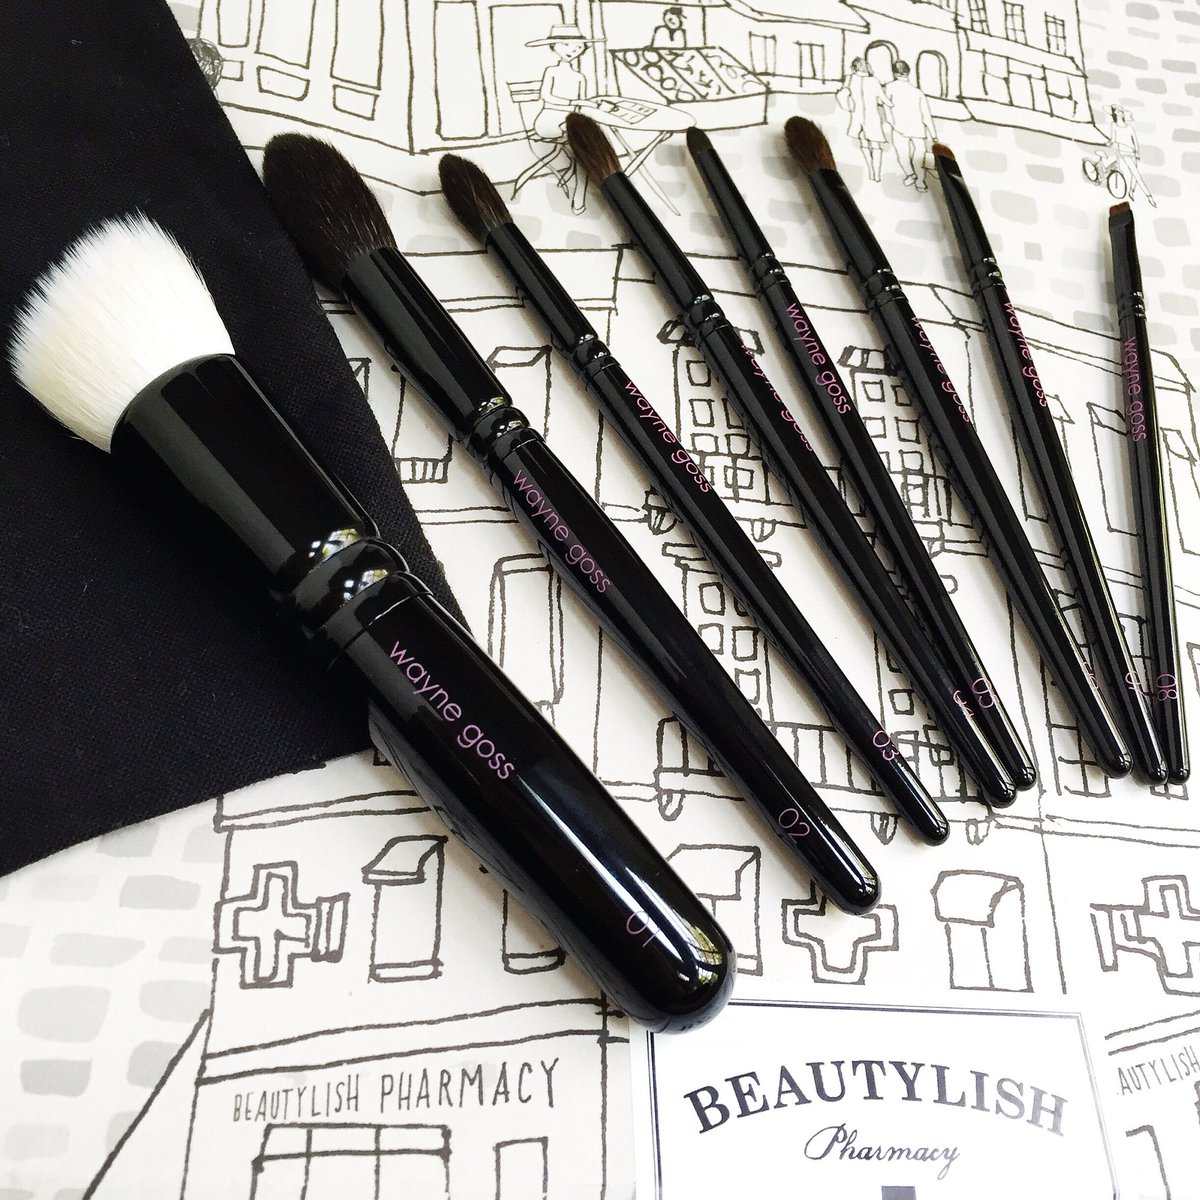 Gr8 review! RT @SavvyinSanFran: Review on @gossmakeupartis #makeupbrushes  https://t.co/Uw9EOFRvpY #bbloggers https://t.co/7lBArP021s